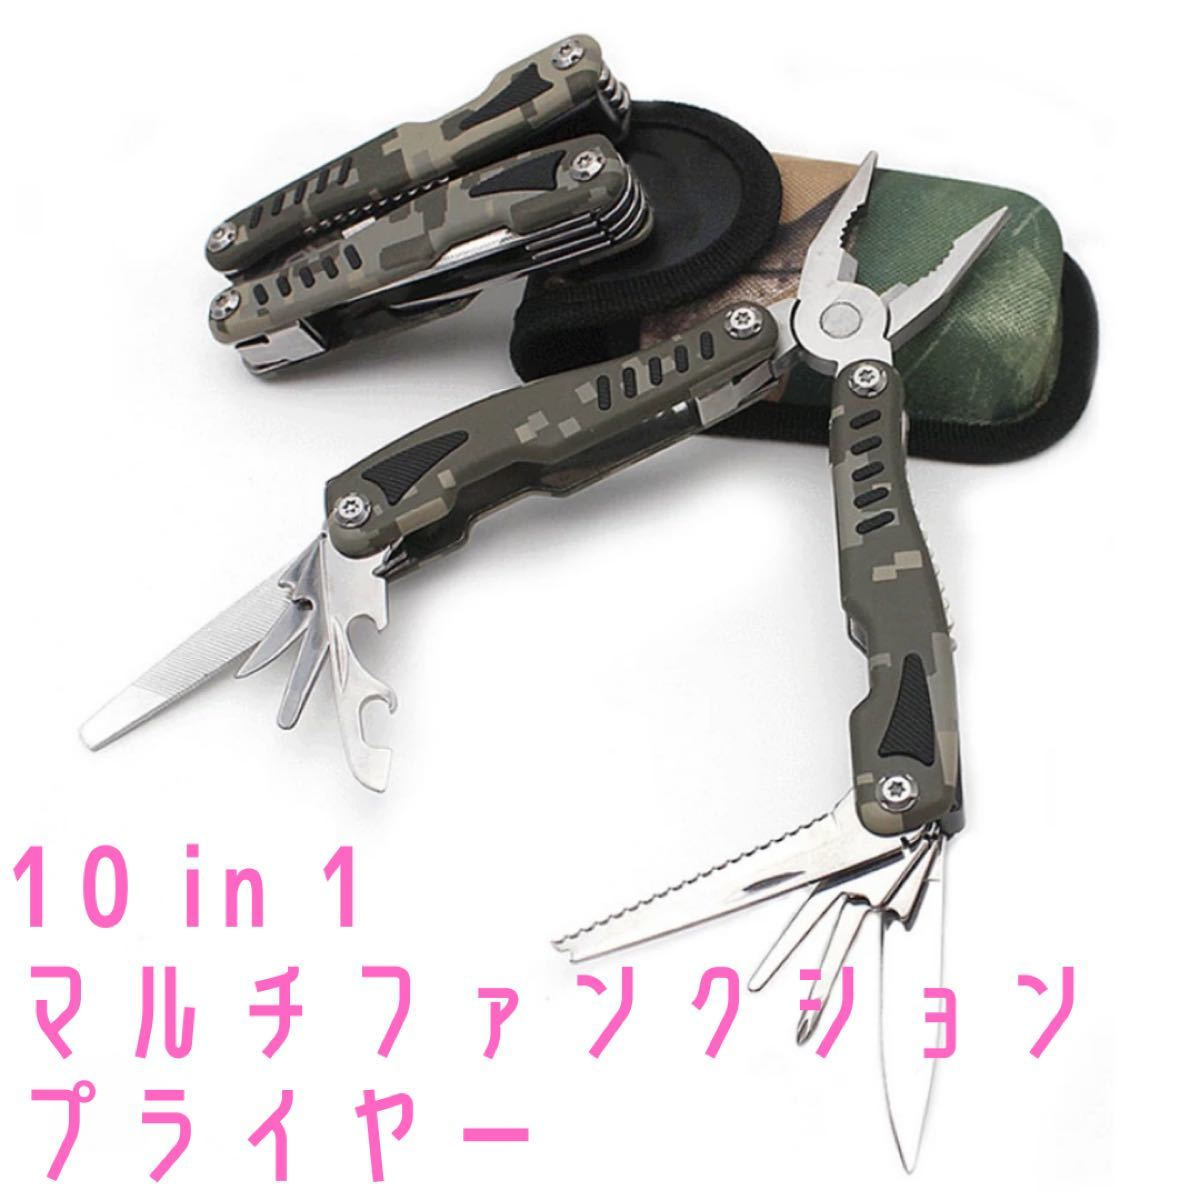 LAGERFEUER 10in1 プライヤー型マルチツール、迷彩柄のケース付き